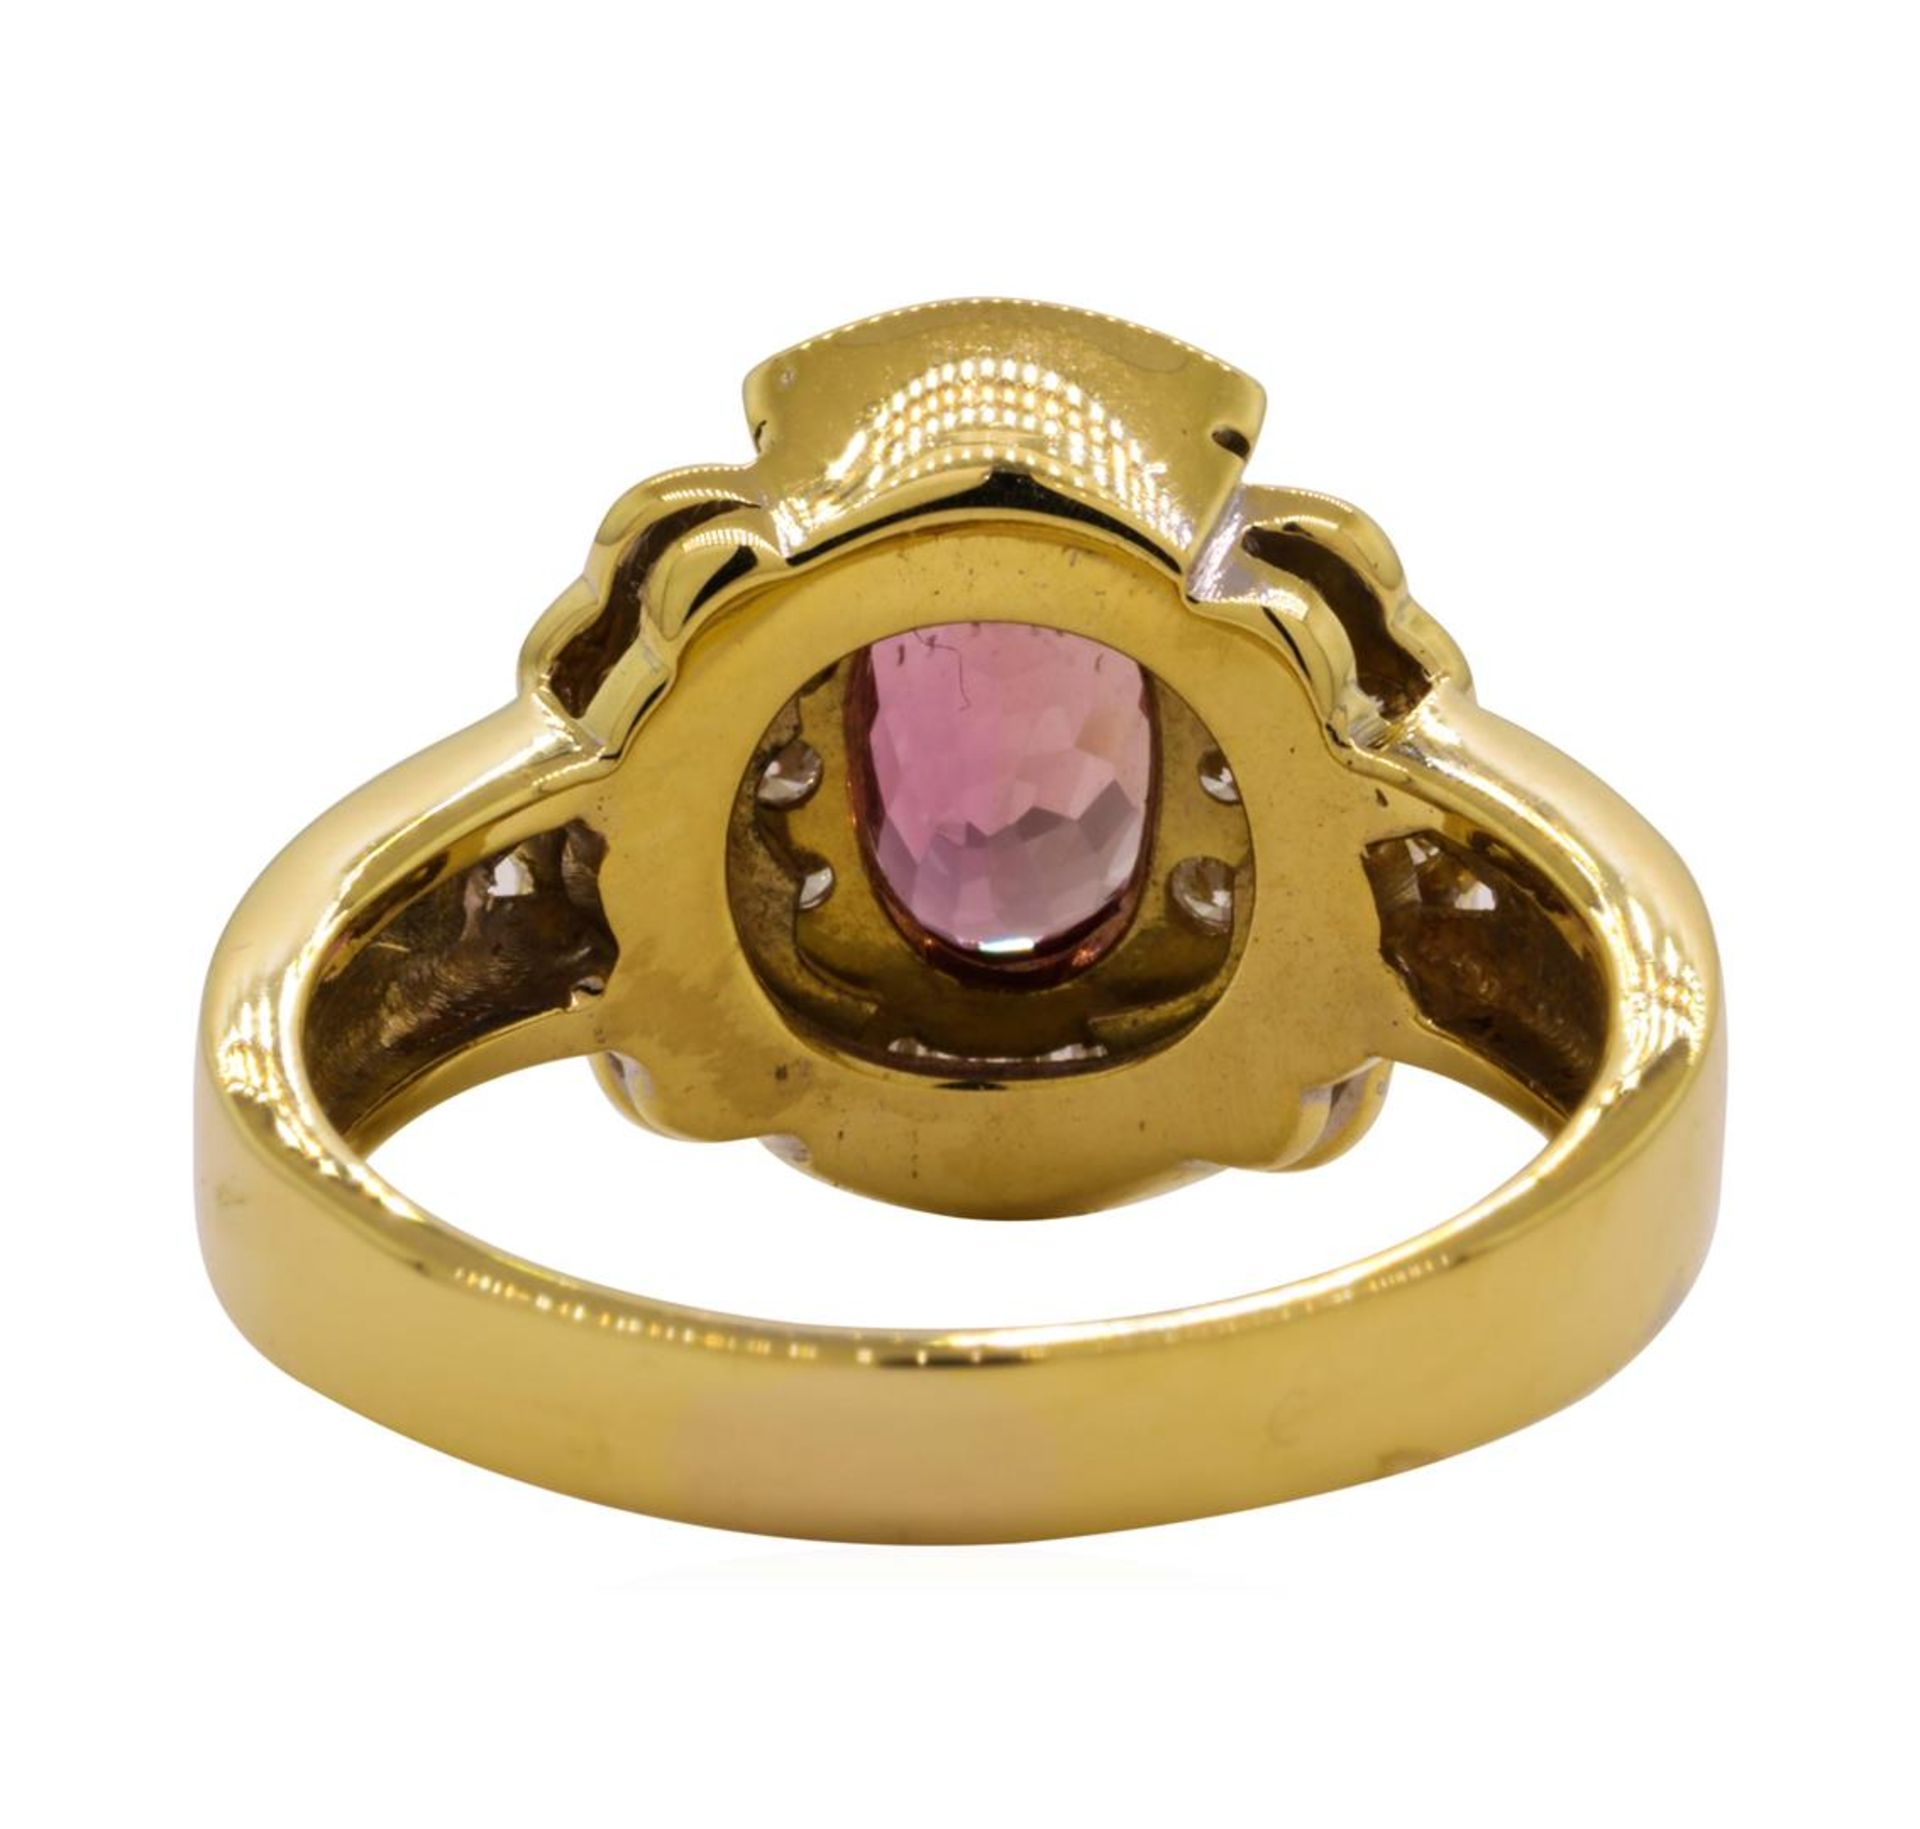 1.82 ctw Pink Spinel and Diamond Ring - 18KT Yellow Gold - Image 3 of 5